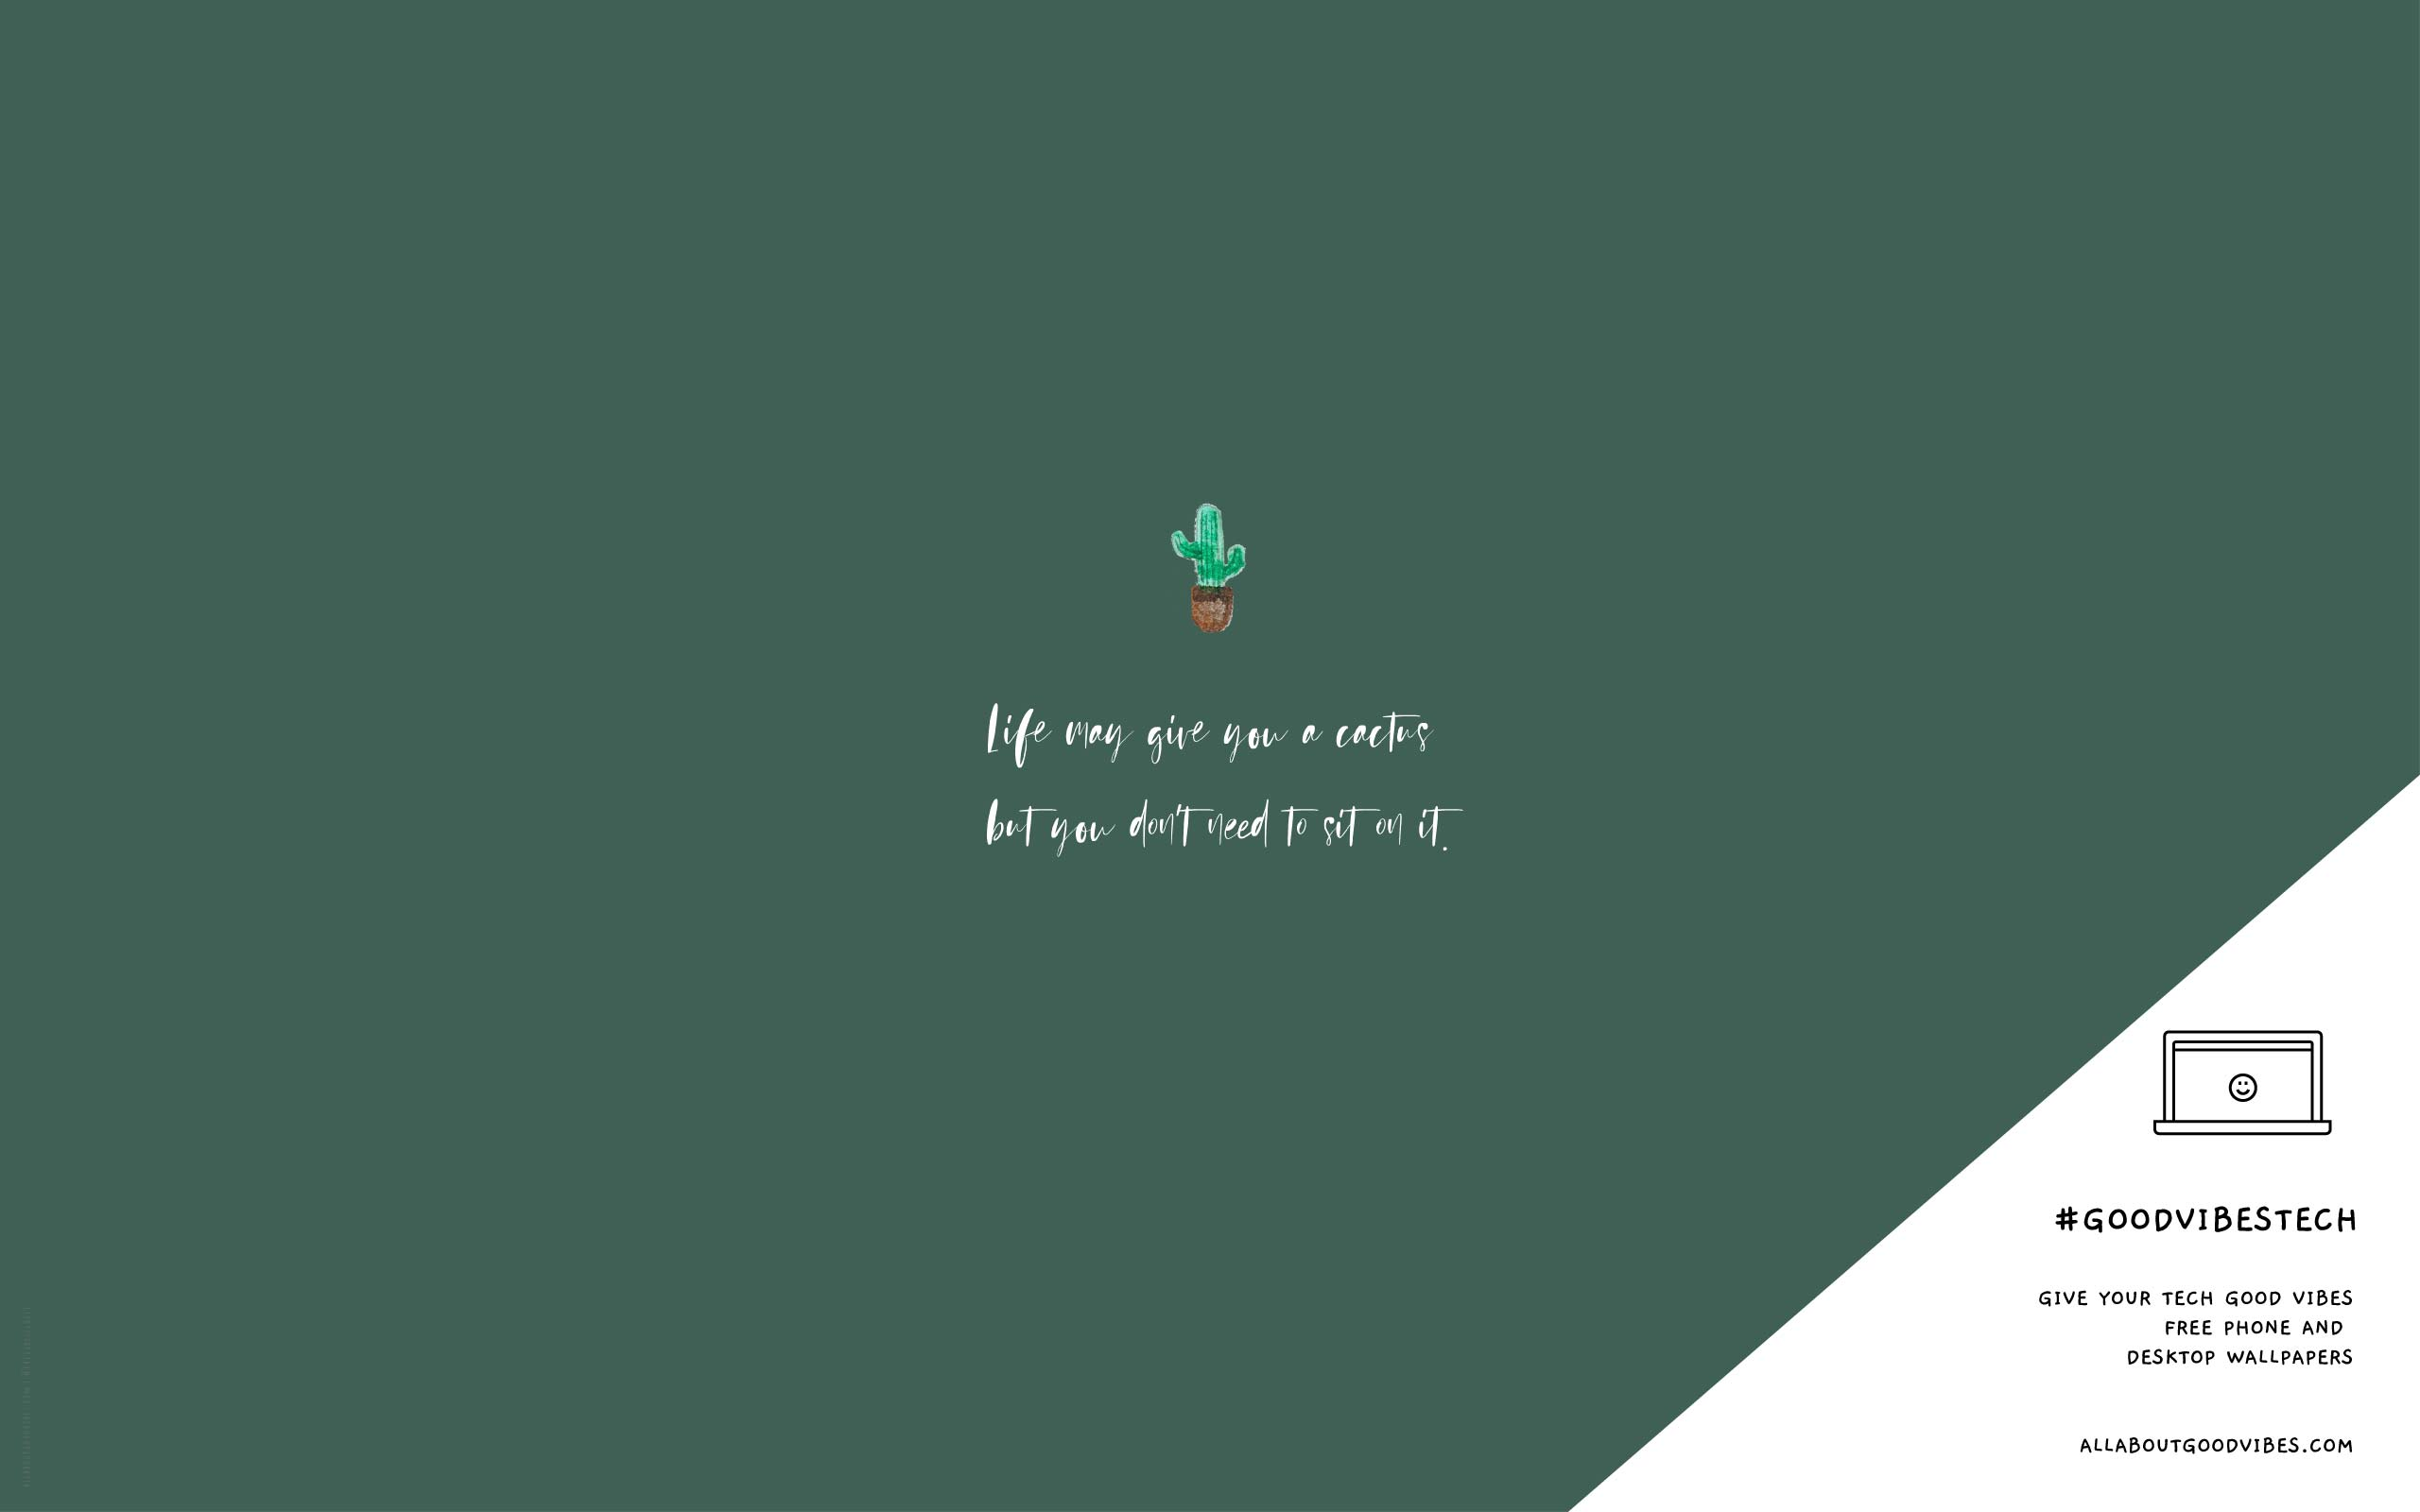 CACTUS-QUOTE-FREE-PHONE-DESKTOP-WALLPAPERS-DOWNLOAD-ALLABOUTGOODVIBES.COM